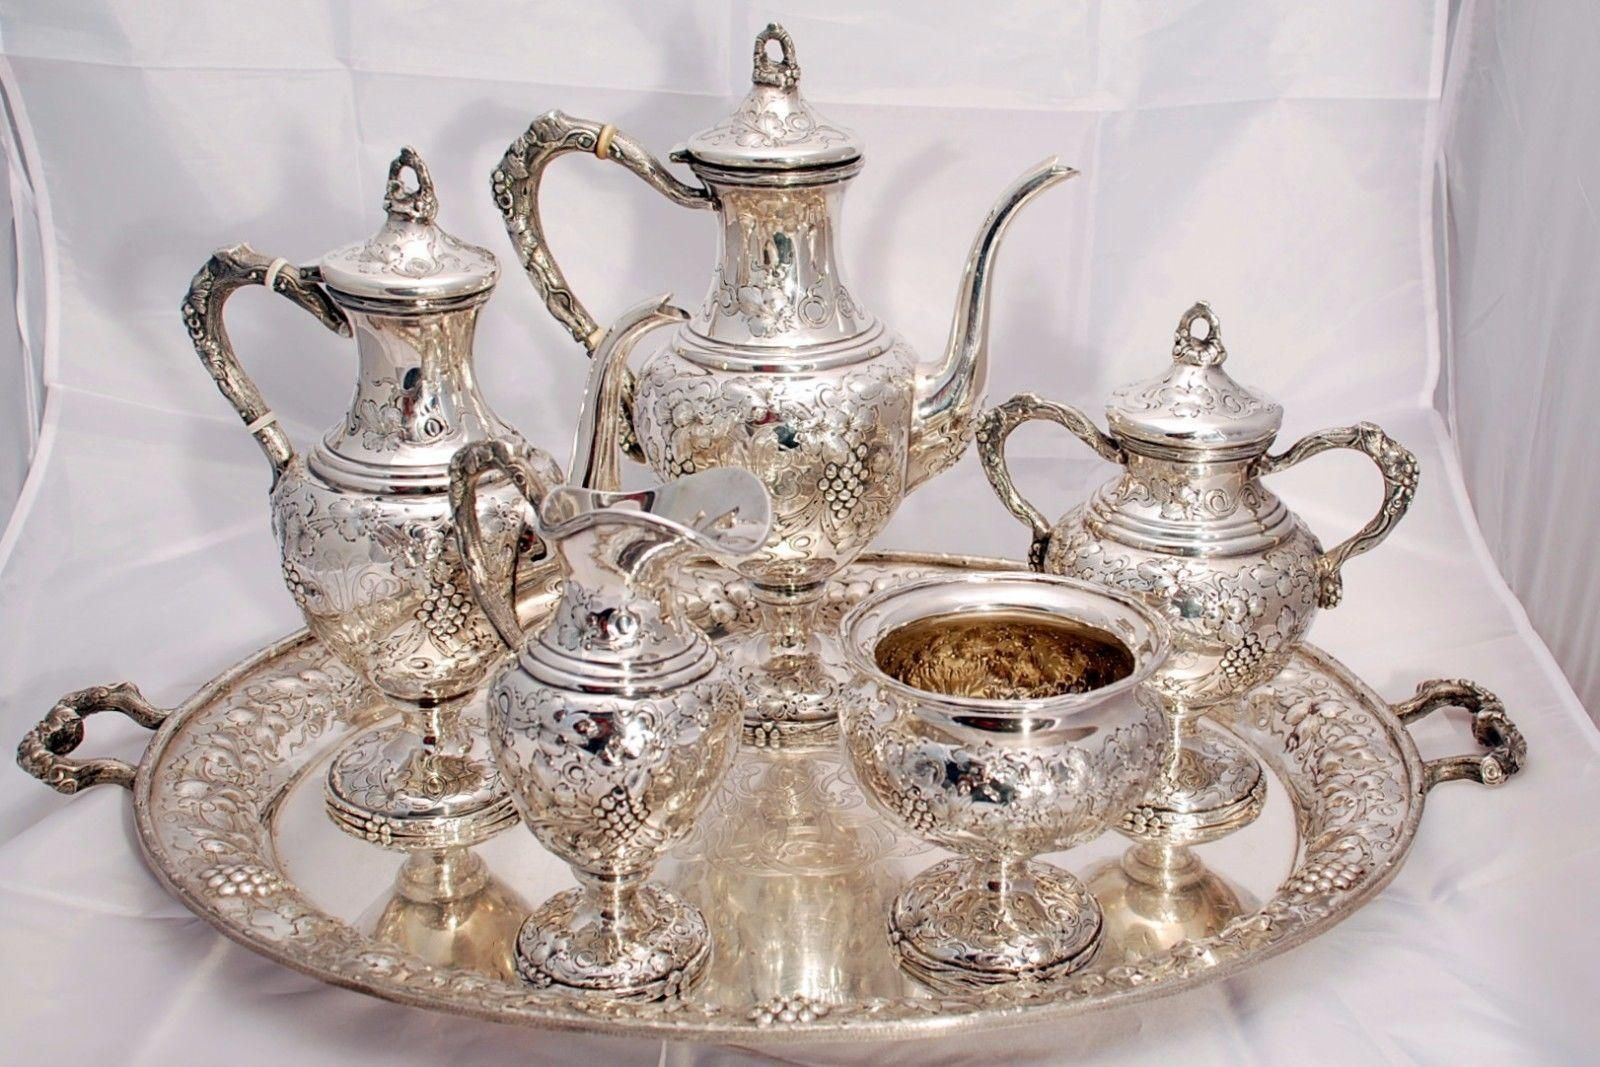 Complete sterling silver tea coffee service with tray by